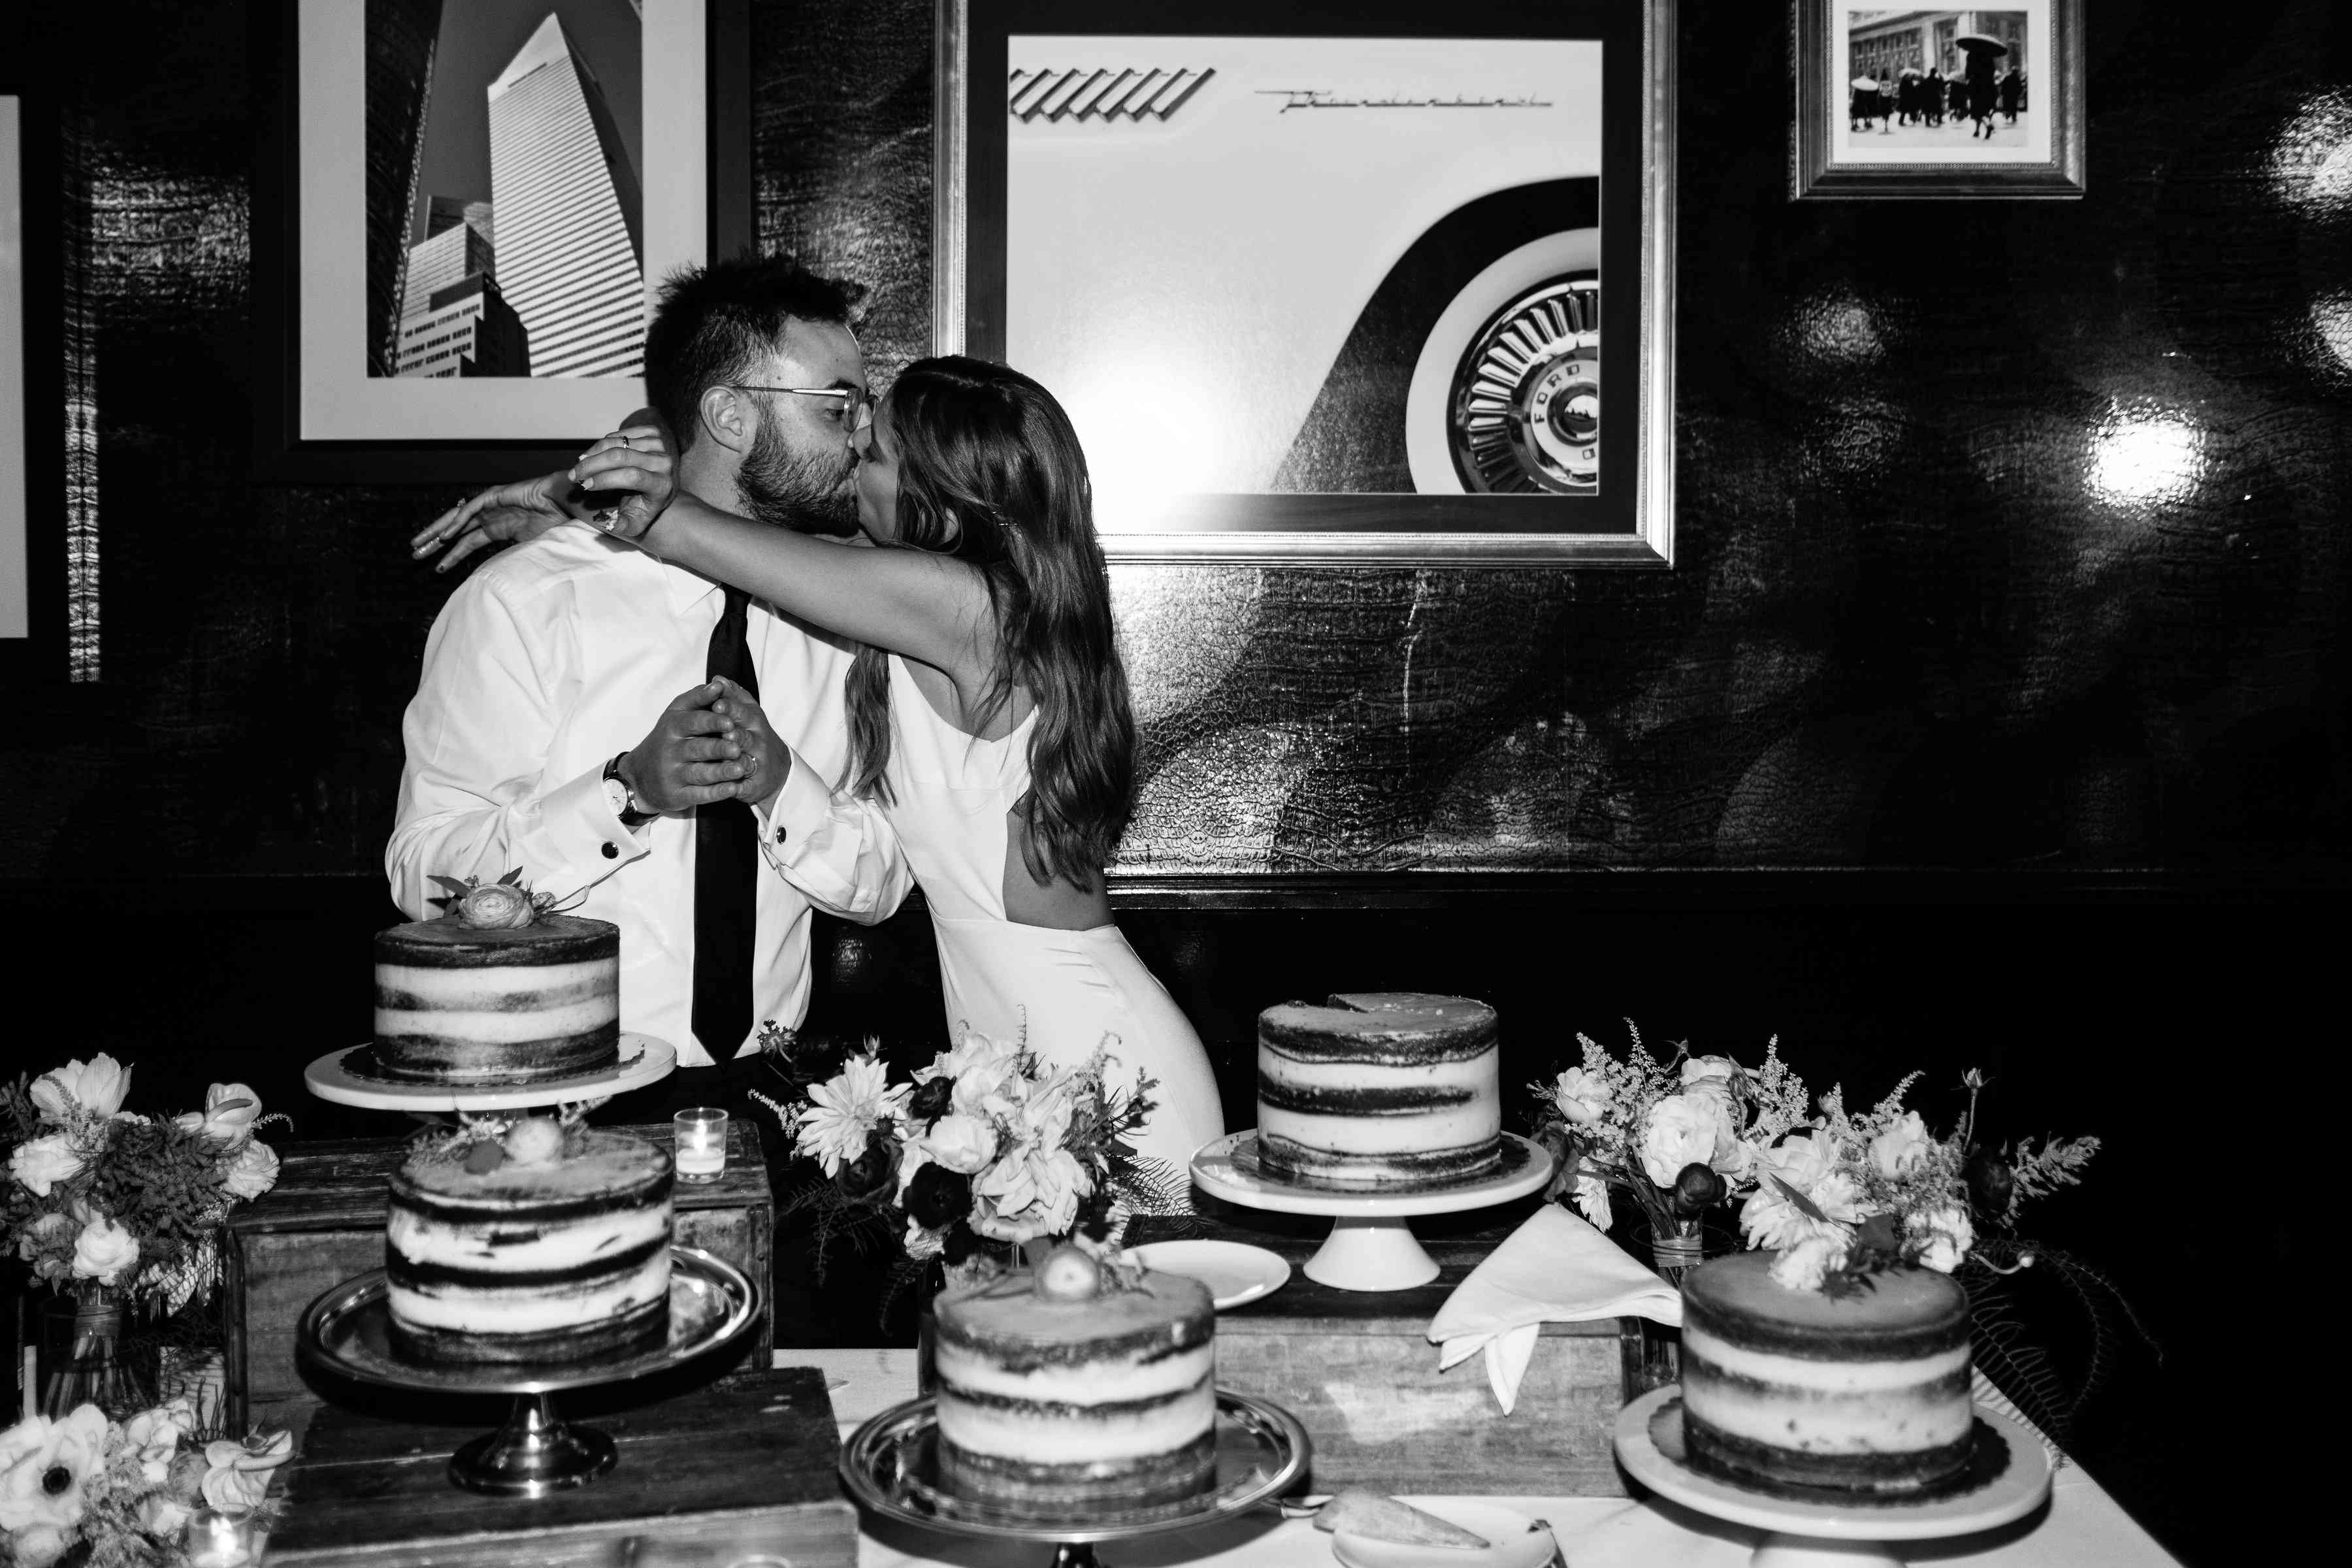 Bride and groom kissing near cakes